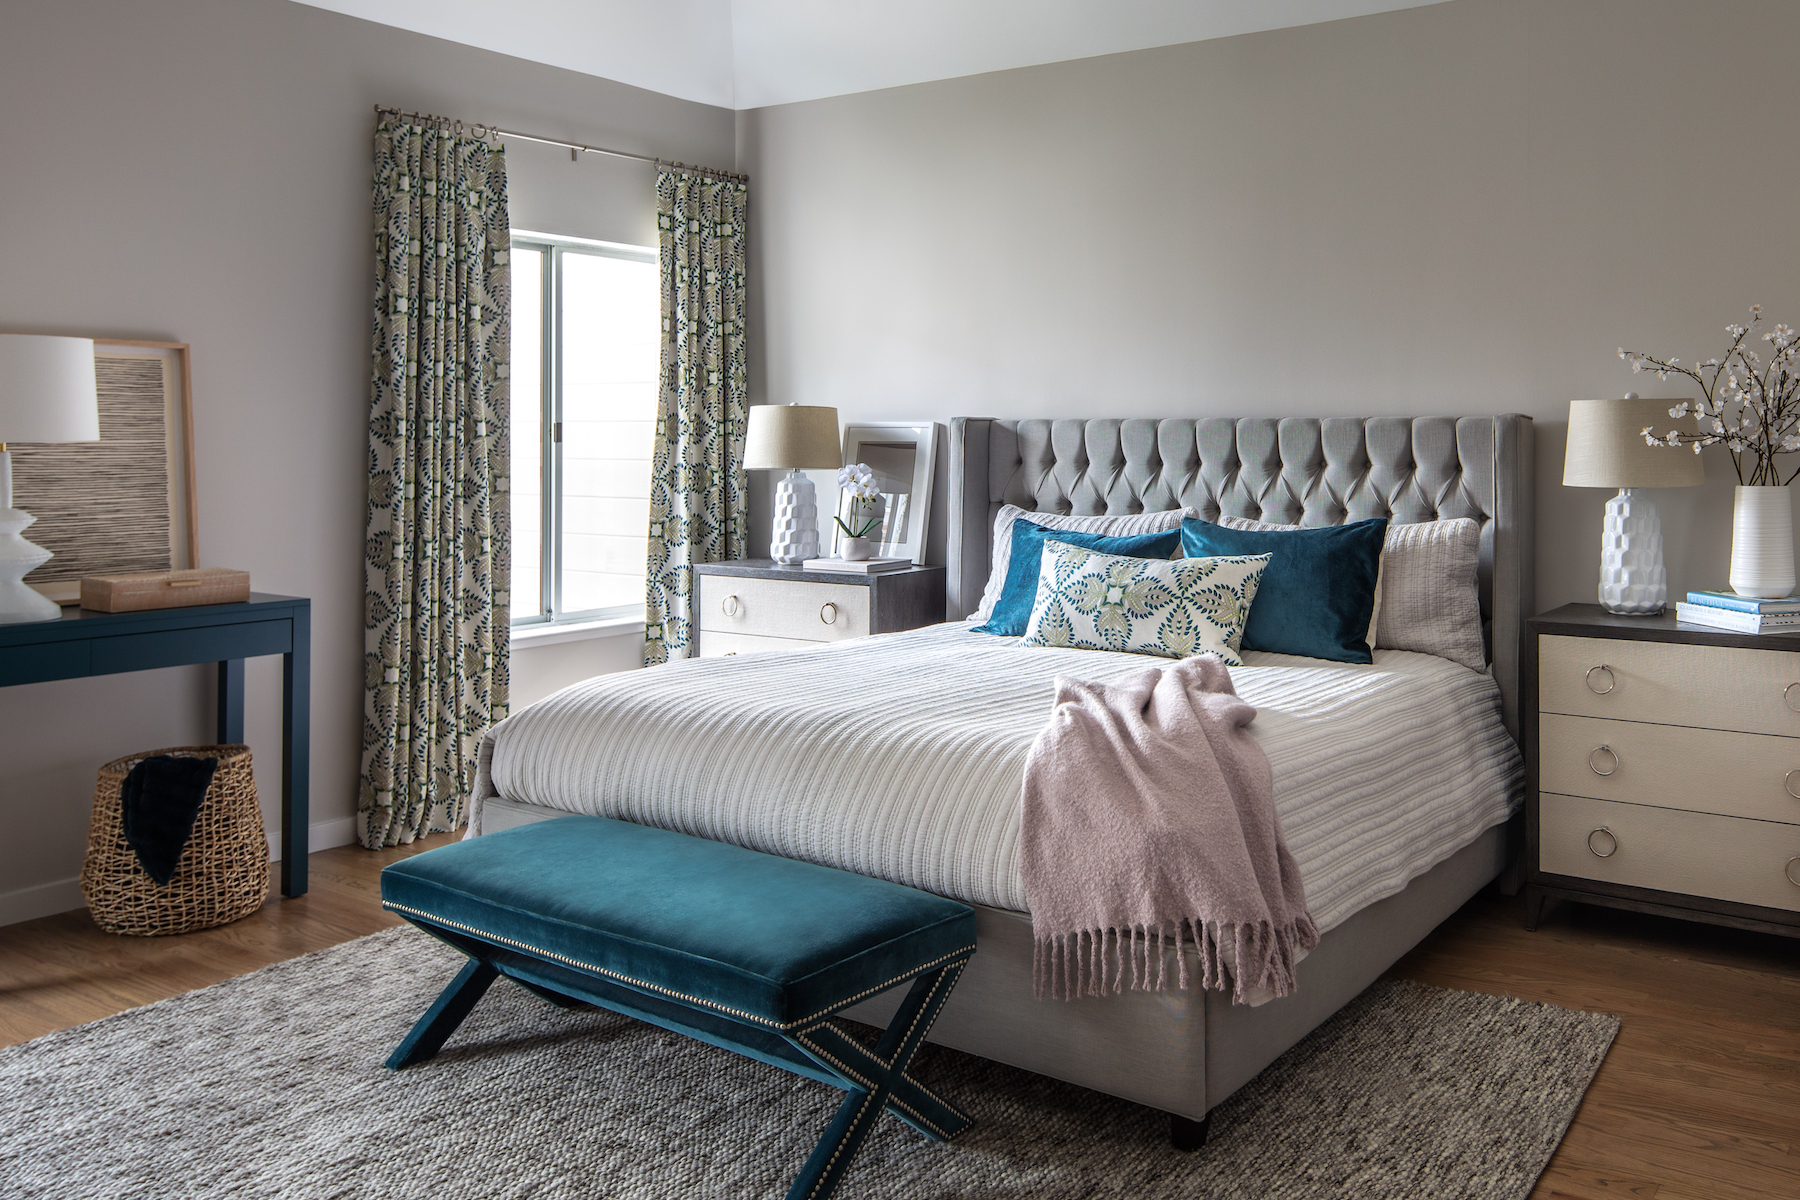 Home Makeover with Bedroom